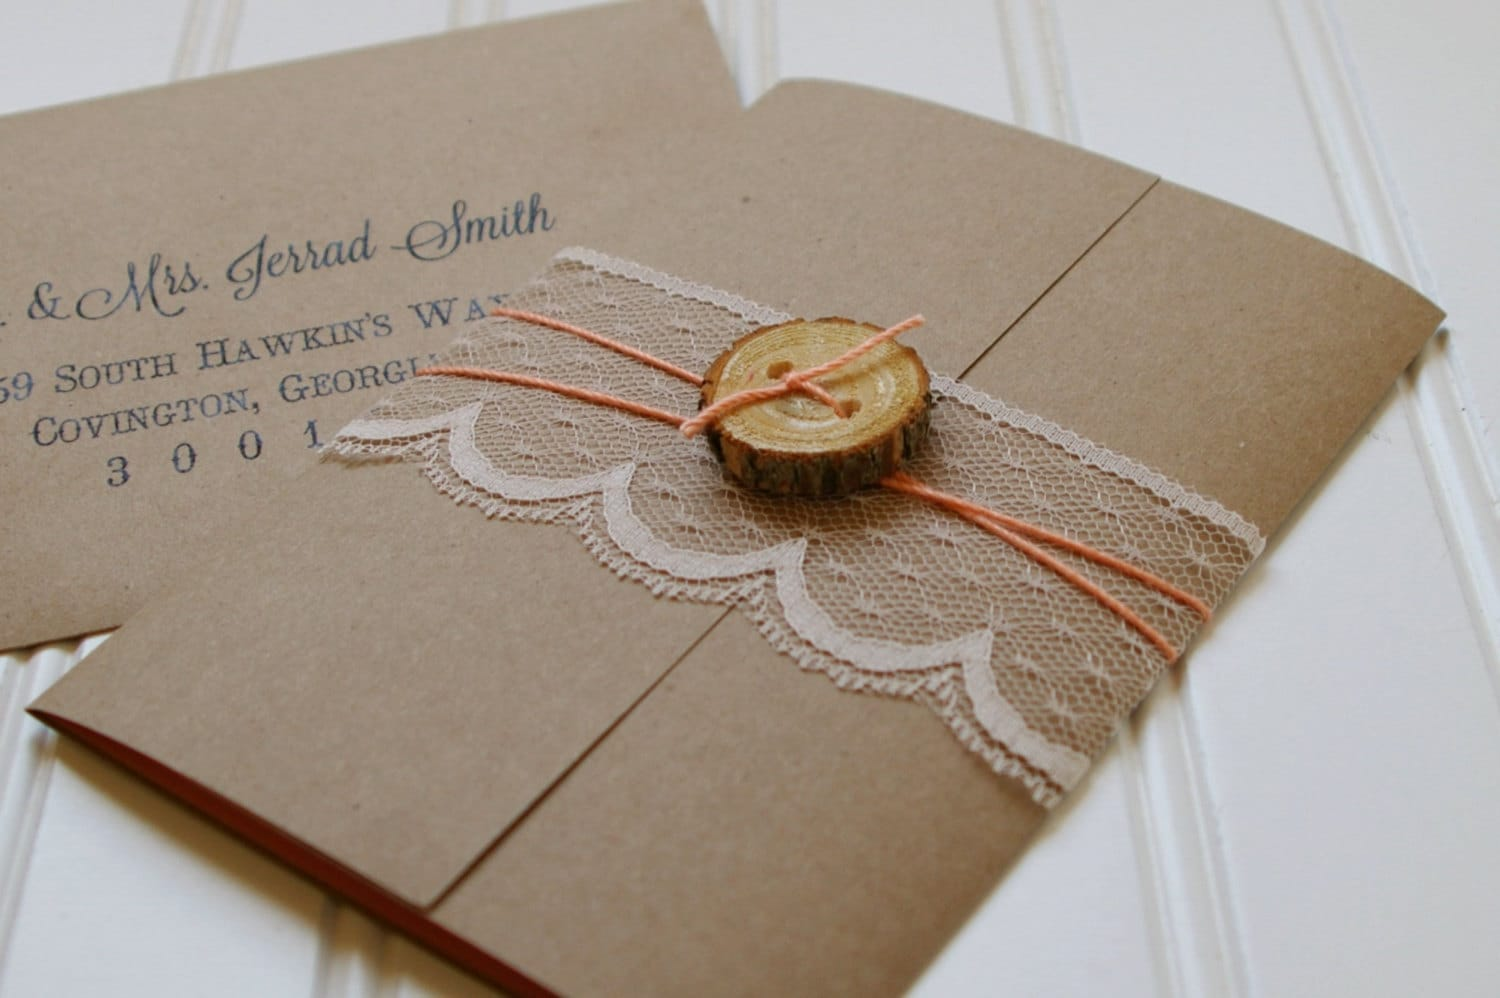 Wedding Invitations Handmade: Rustic Wood Slice And Lace Wedding Invitations: Unique